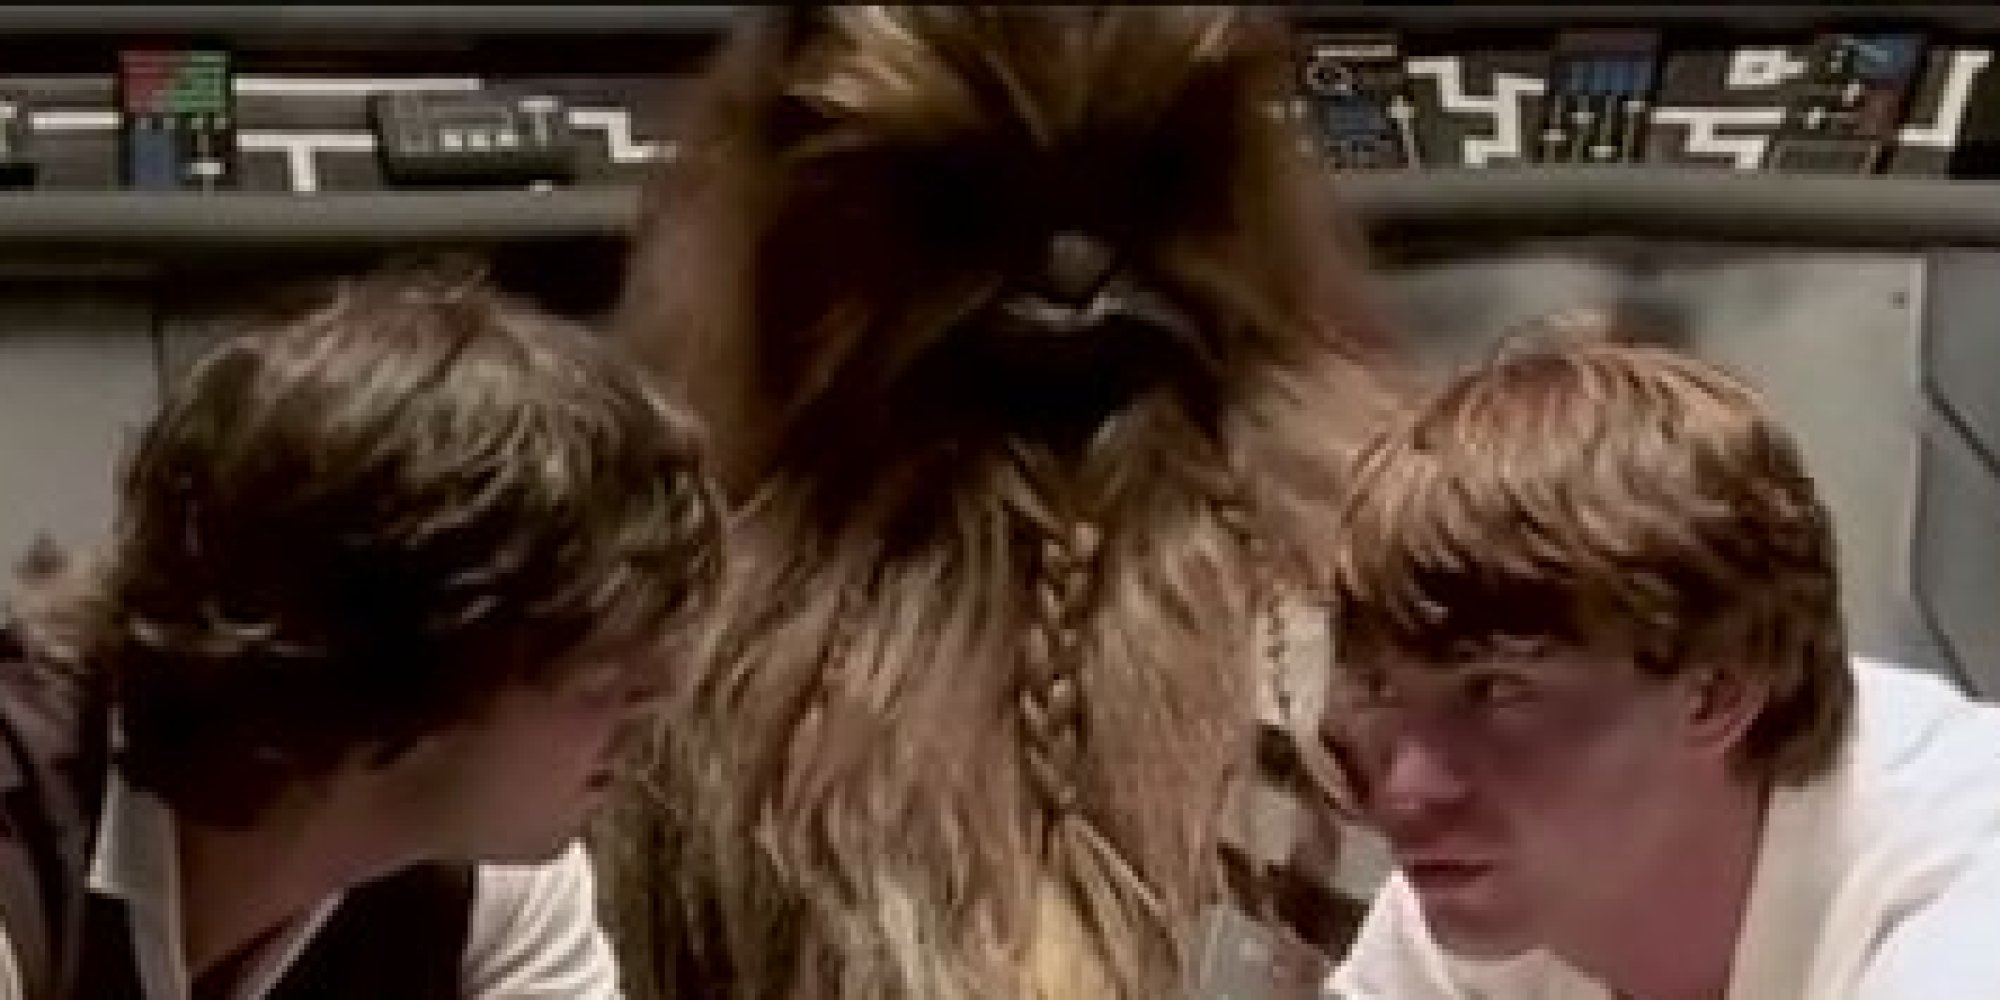 Chewbacca Star Wars Porn - Dick Chibbles: The Man, The Myth, The Chewbacca In 'Star Wars XXX: A Porn  Parody' | HuffPost